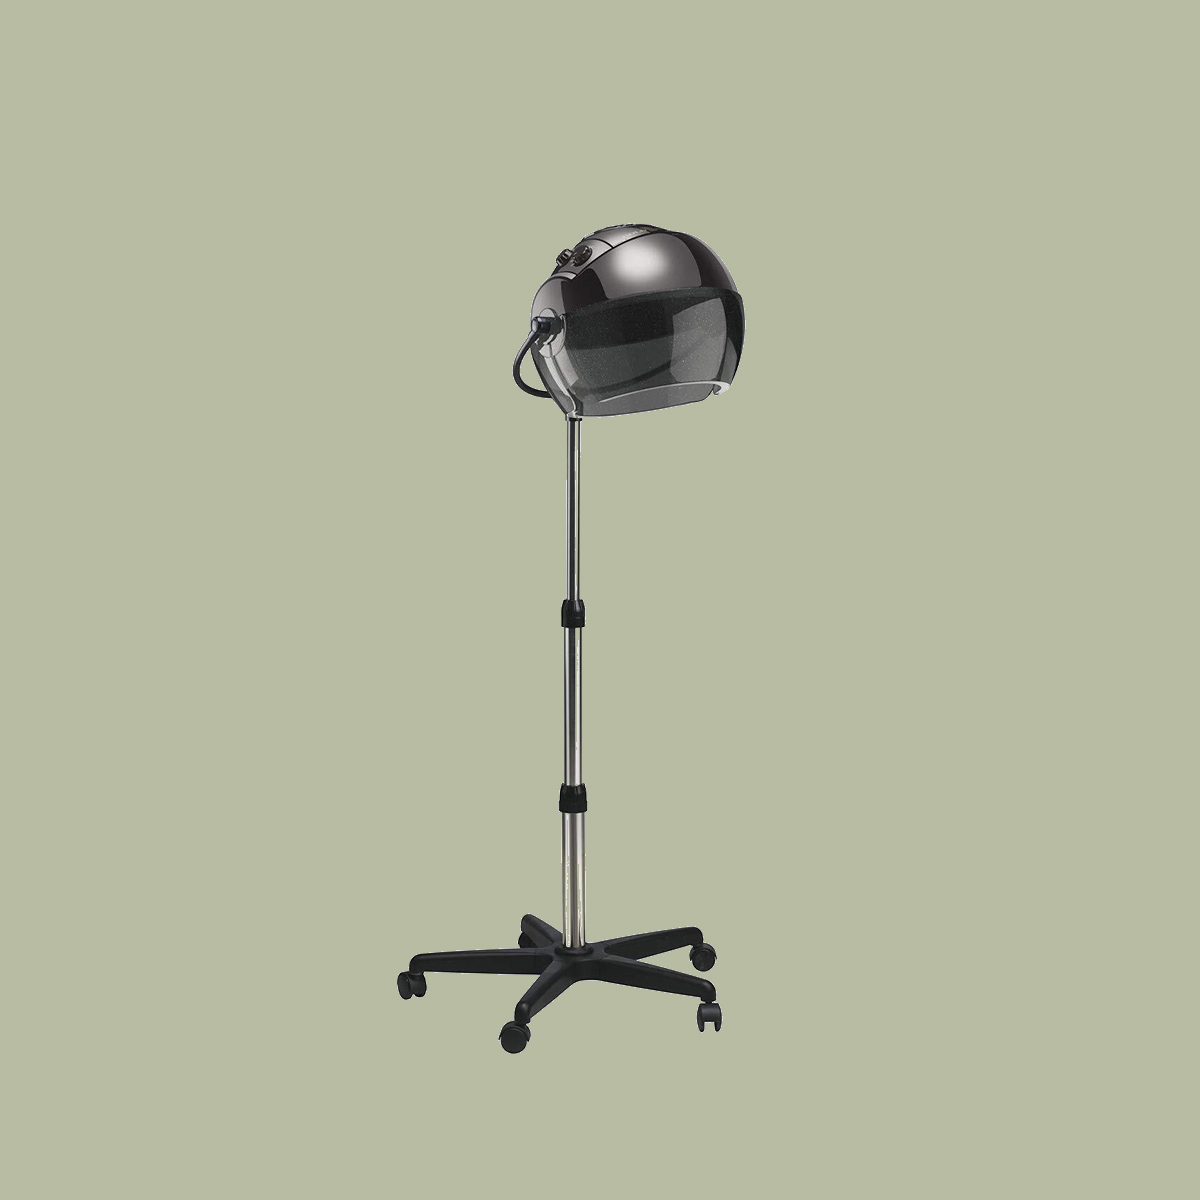 bonnet stand hair dryer in front of green background